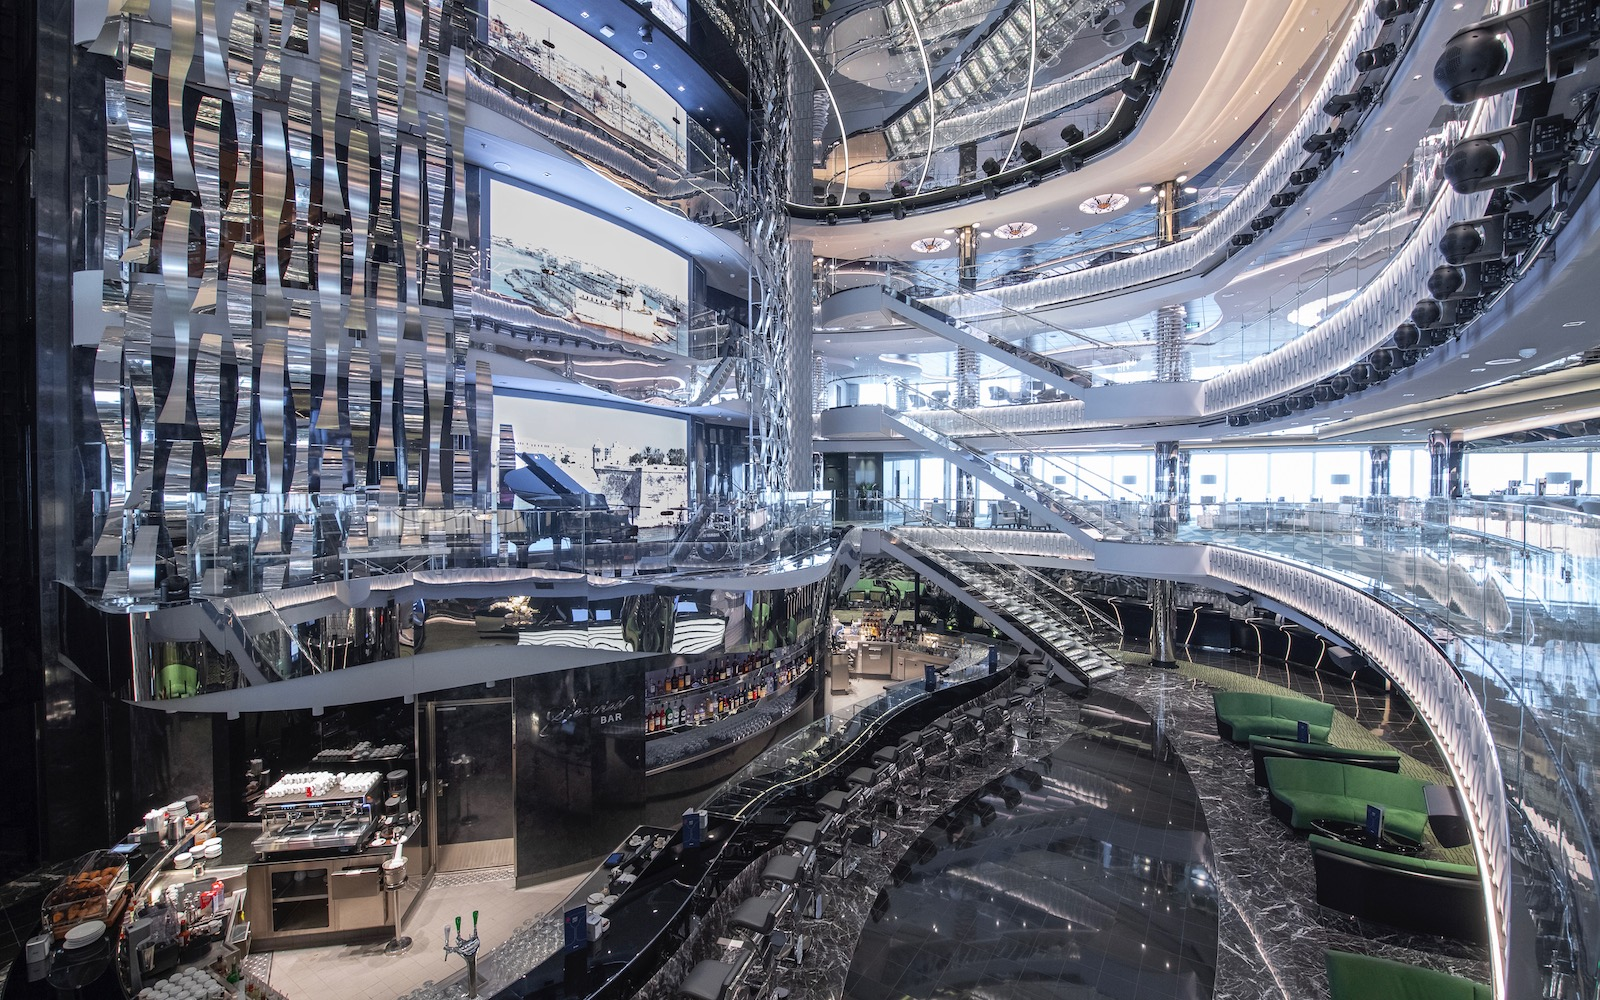 A Look Inside MSC Seaview, the Brand New Luxury Megaship ...